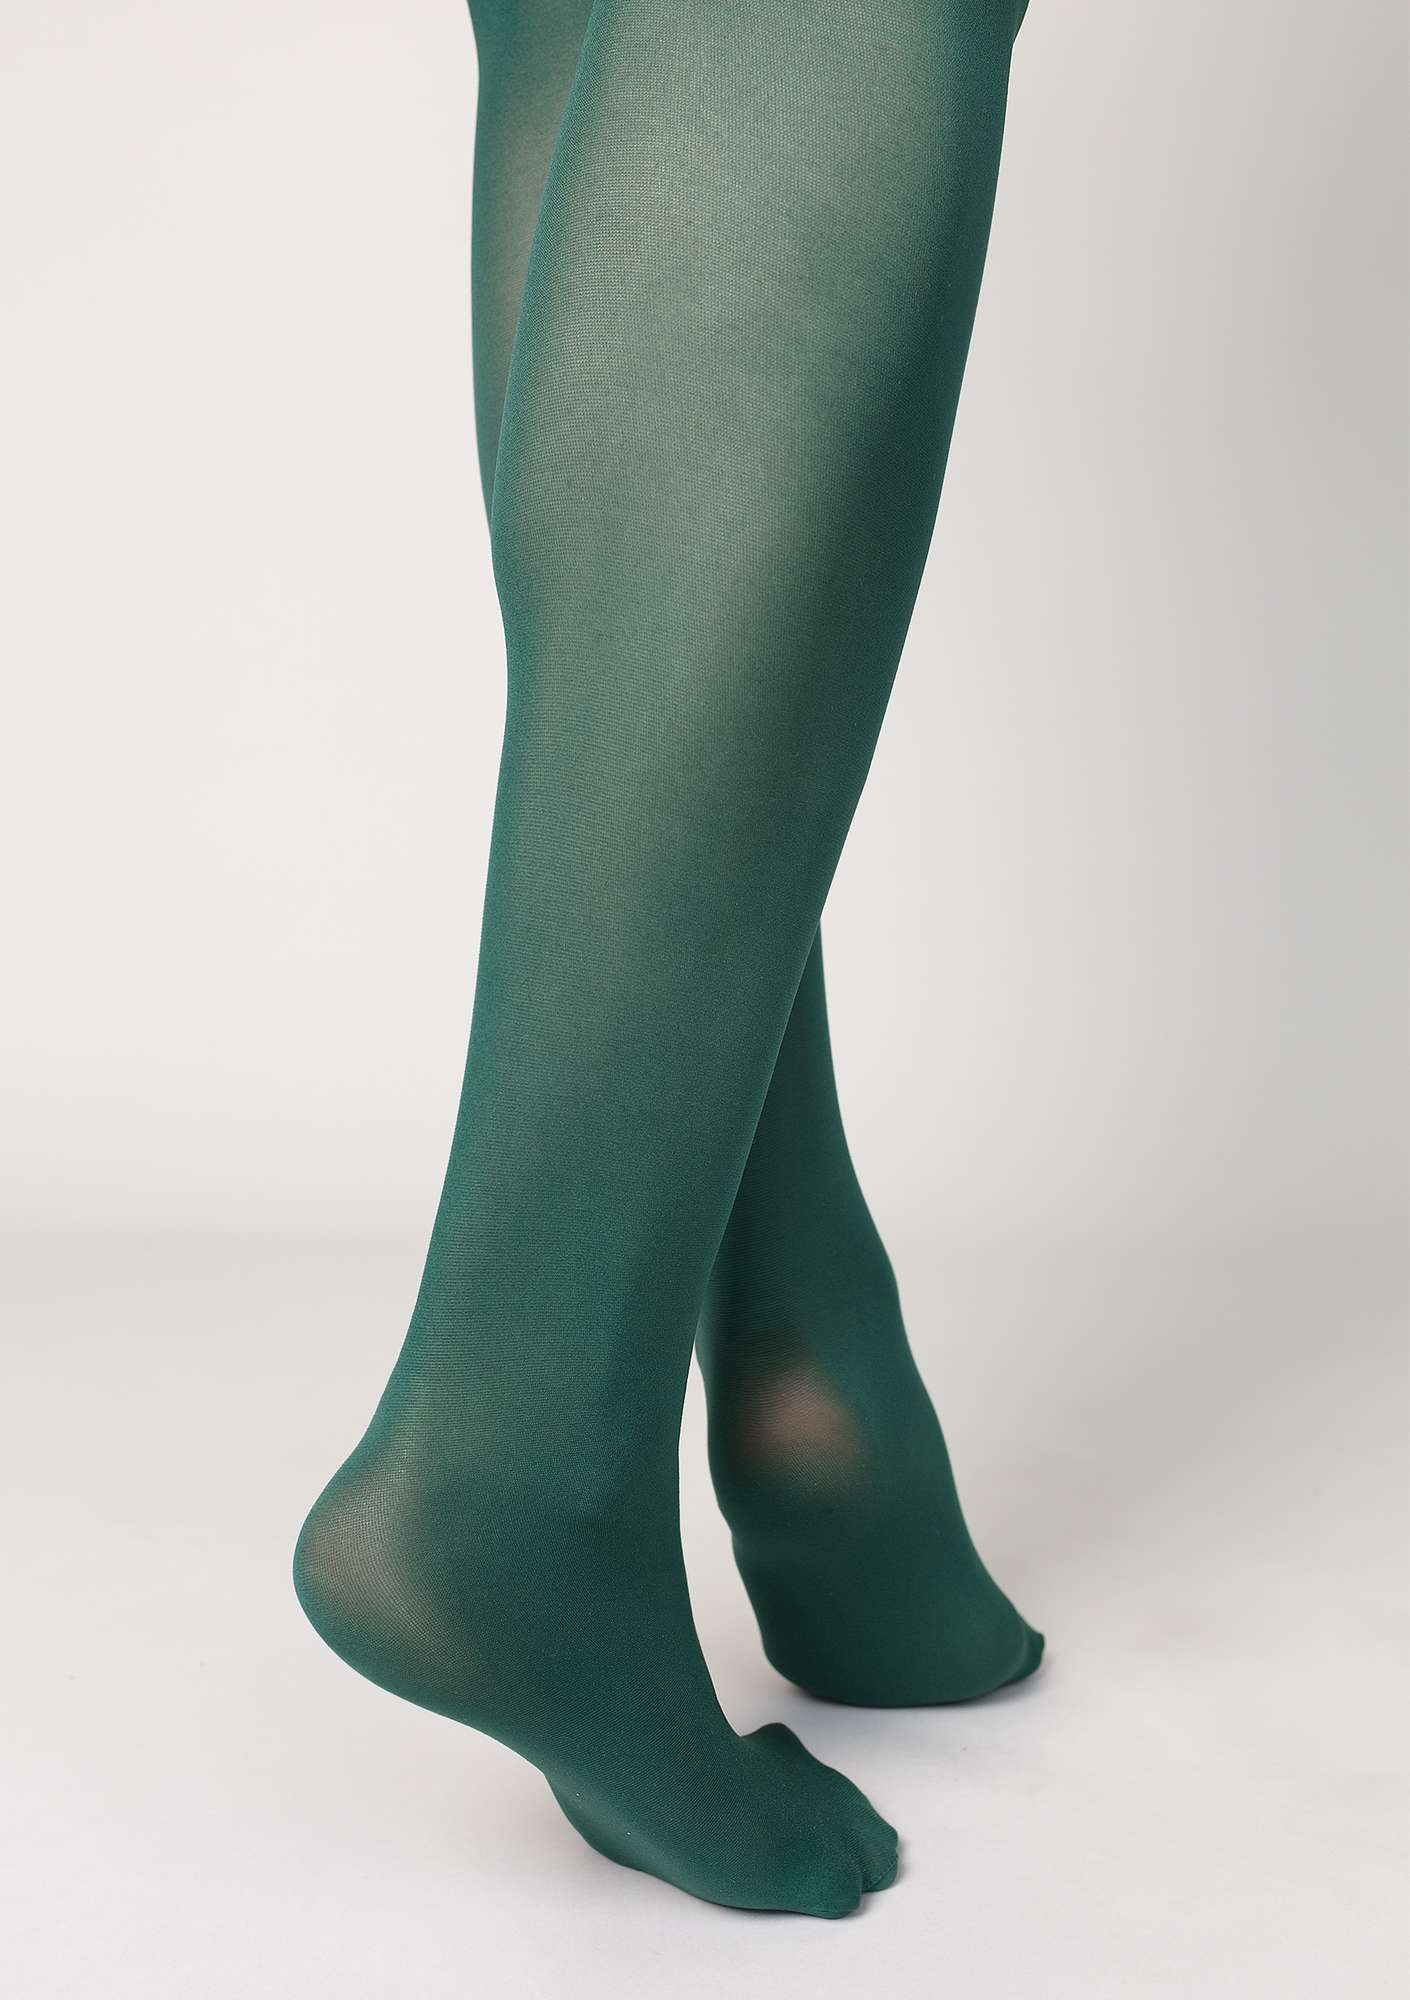 Tights in recycled nylon bottle green